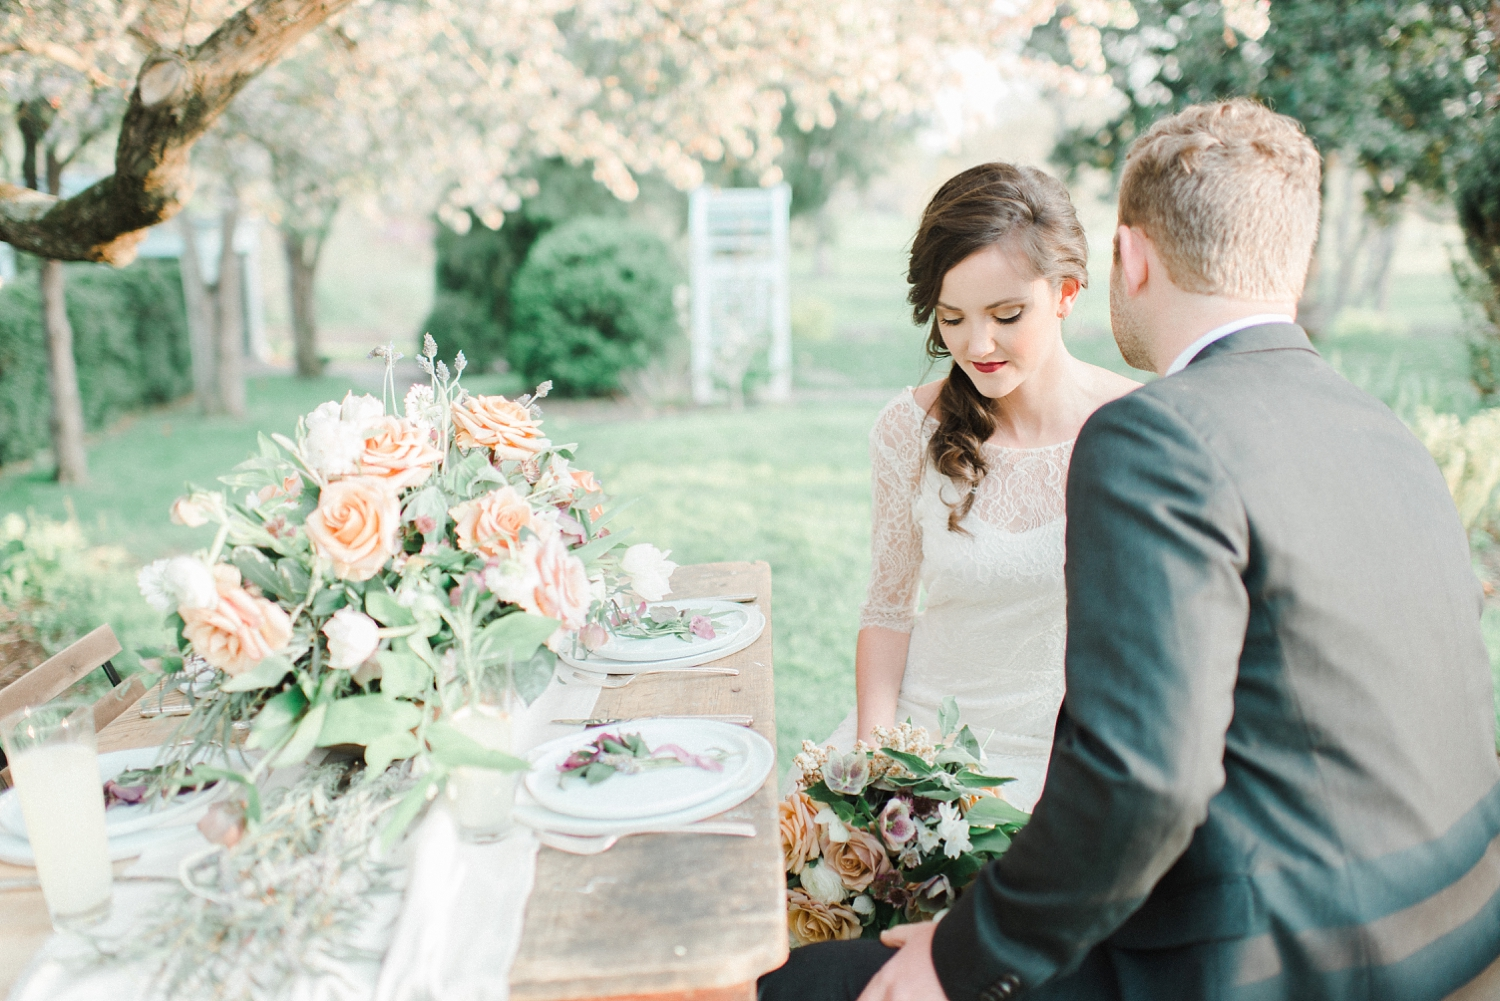 cottage_hill_herb_inspired_wedding_Oatlands_VA_wedding_Photographer_0062.jpg